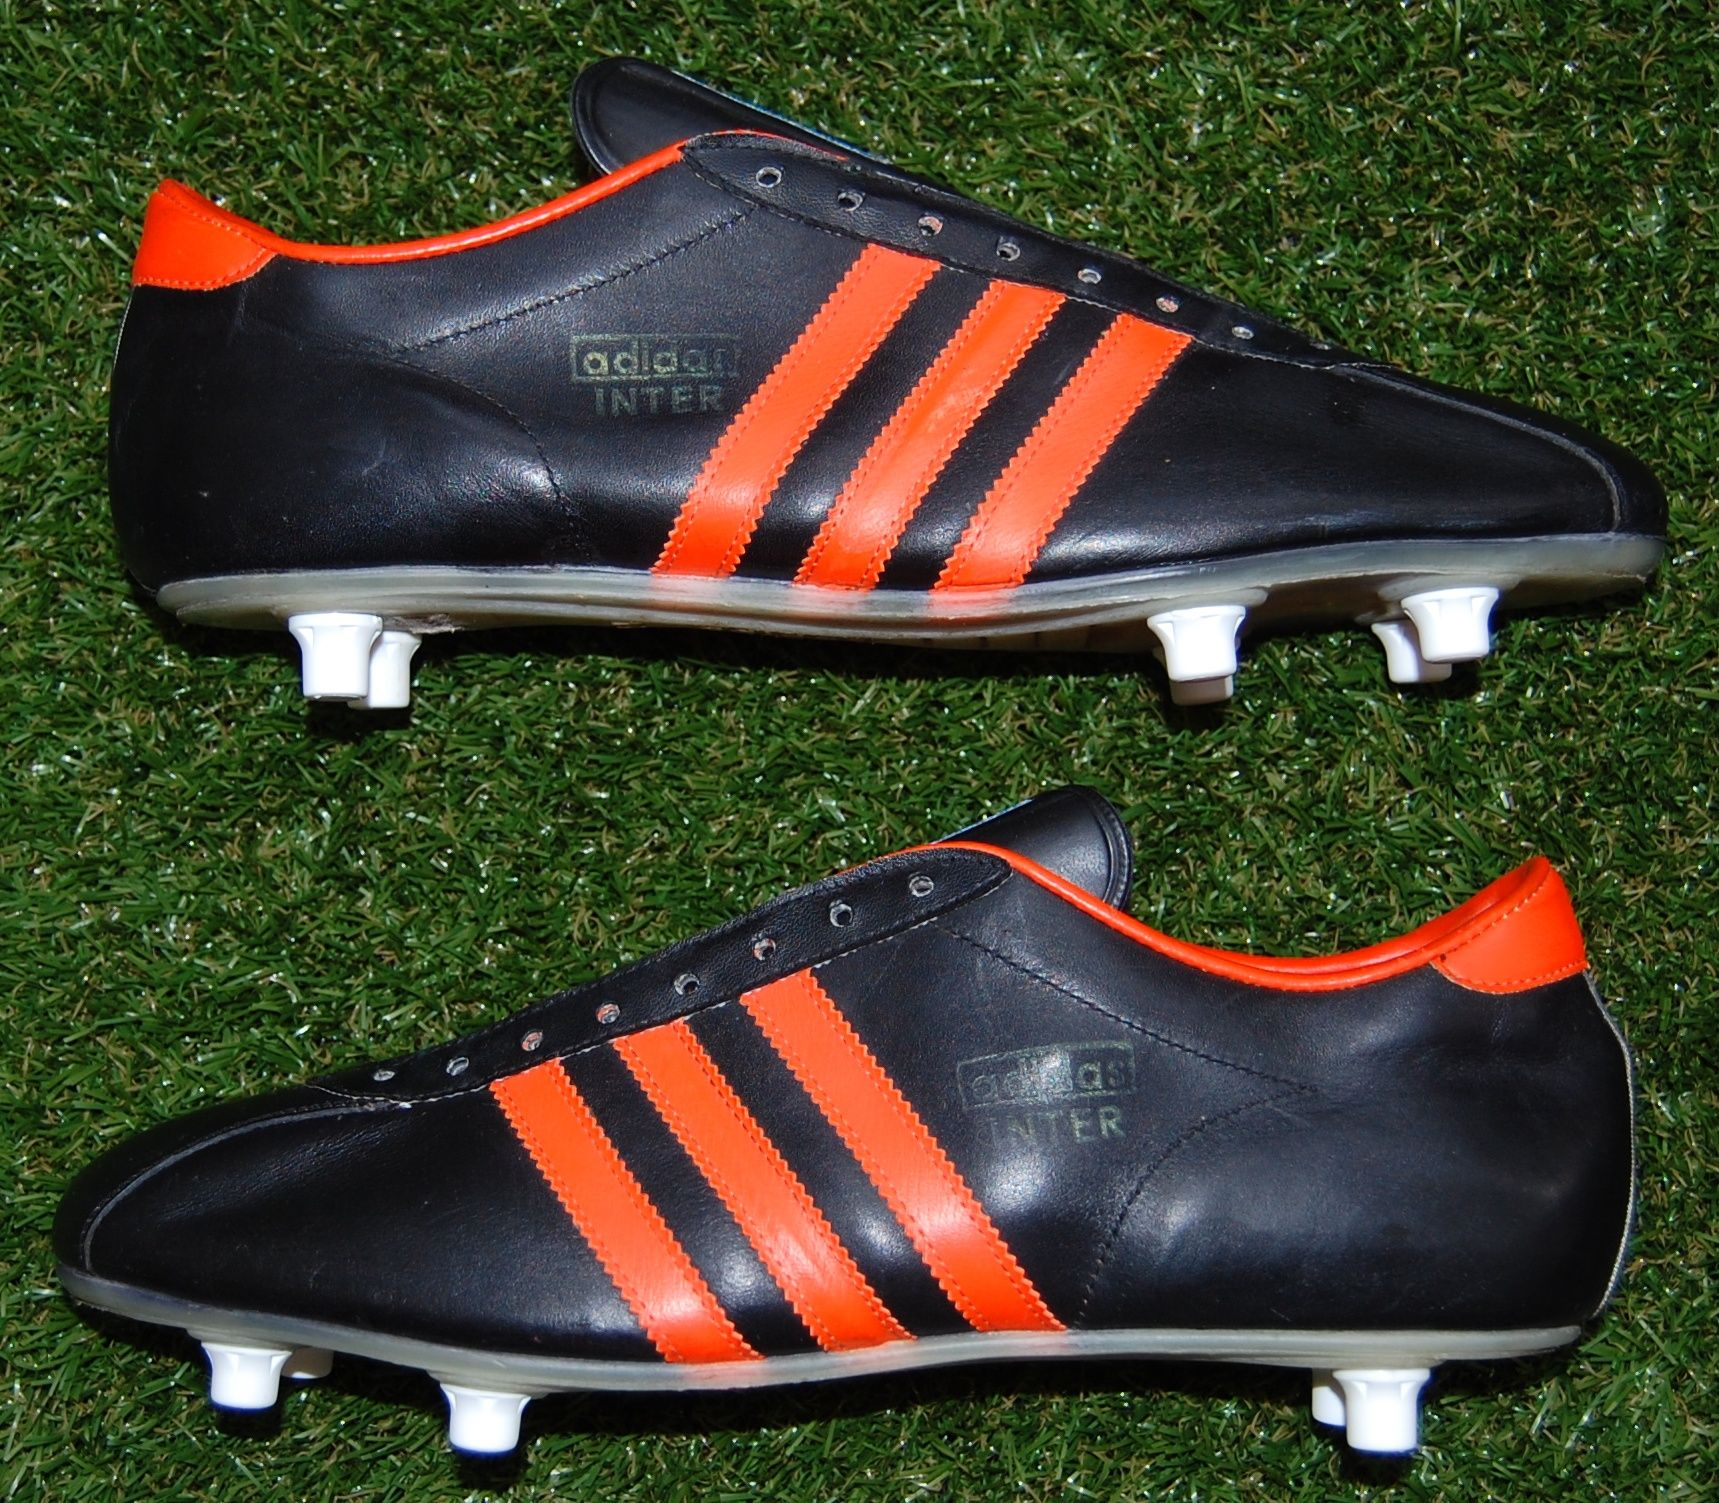 bc1937fe46c Adidas Inter Boots. Adidas Soccer Shoes